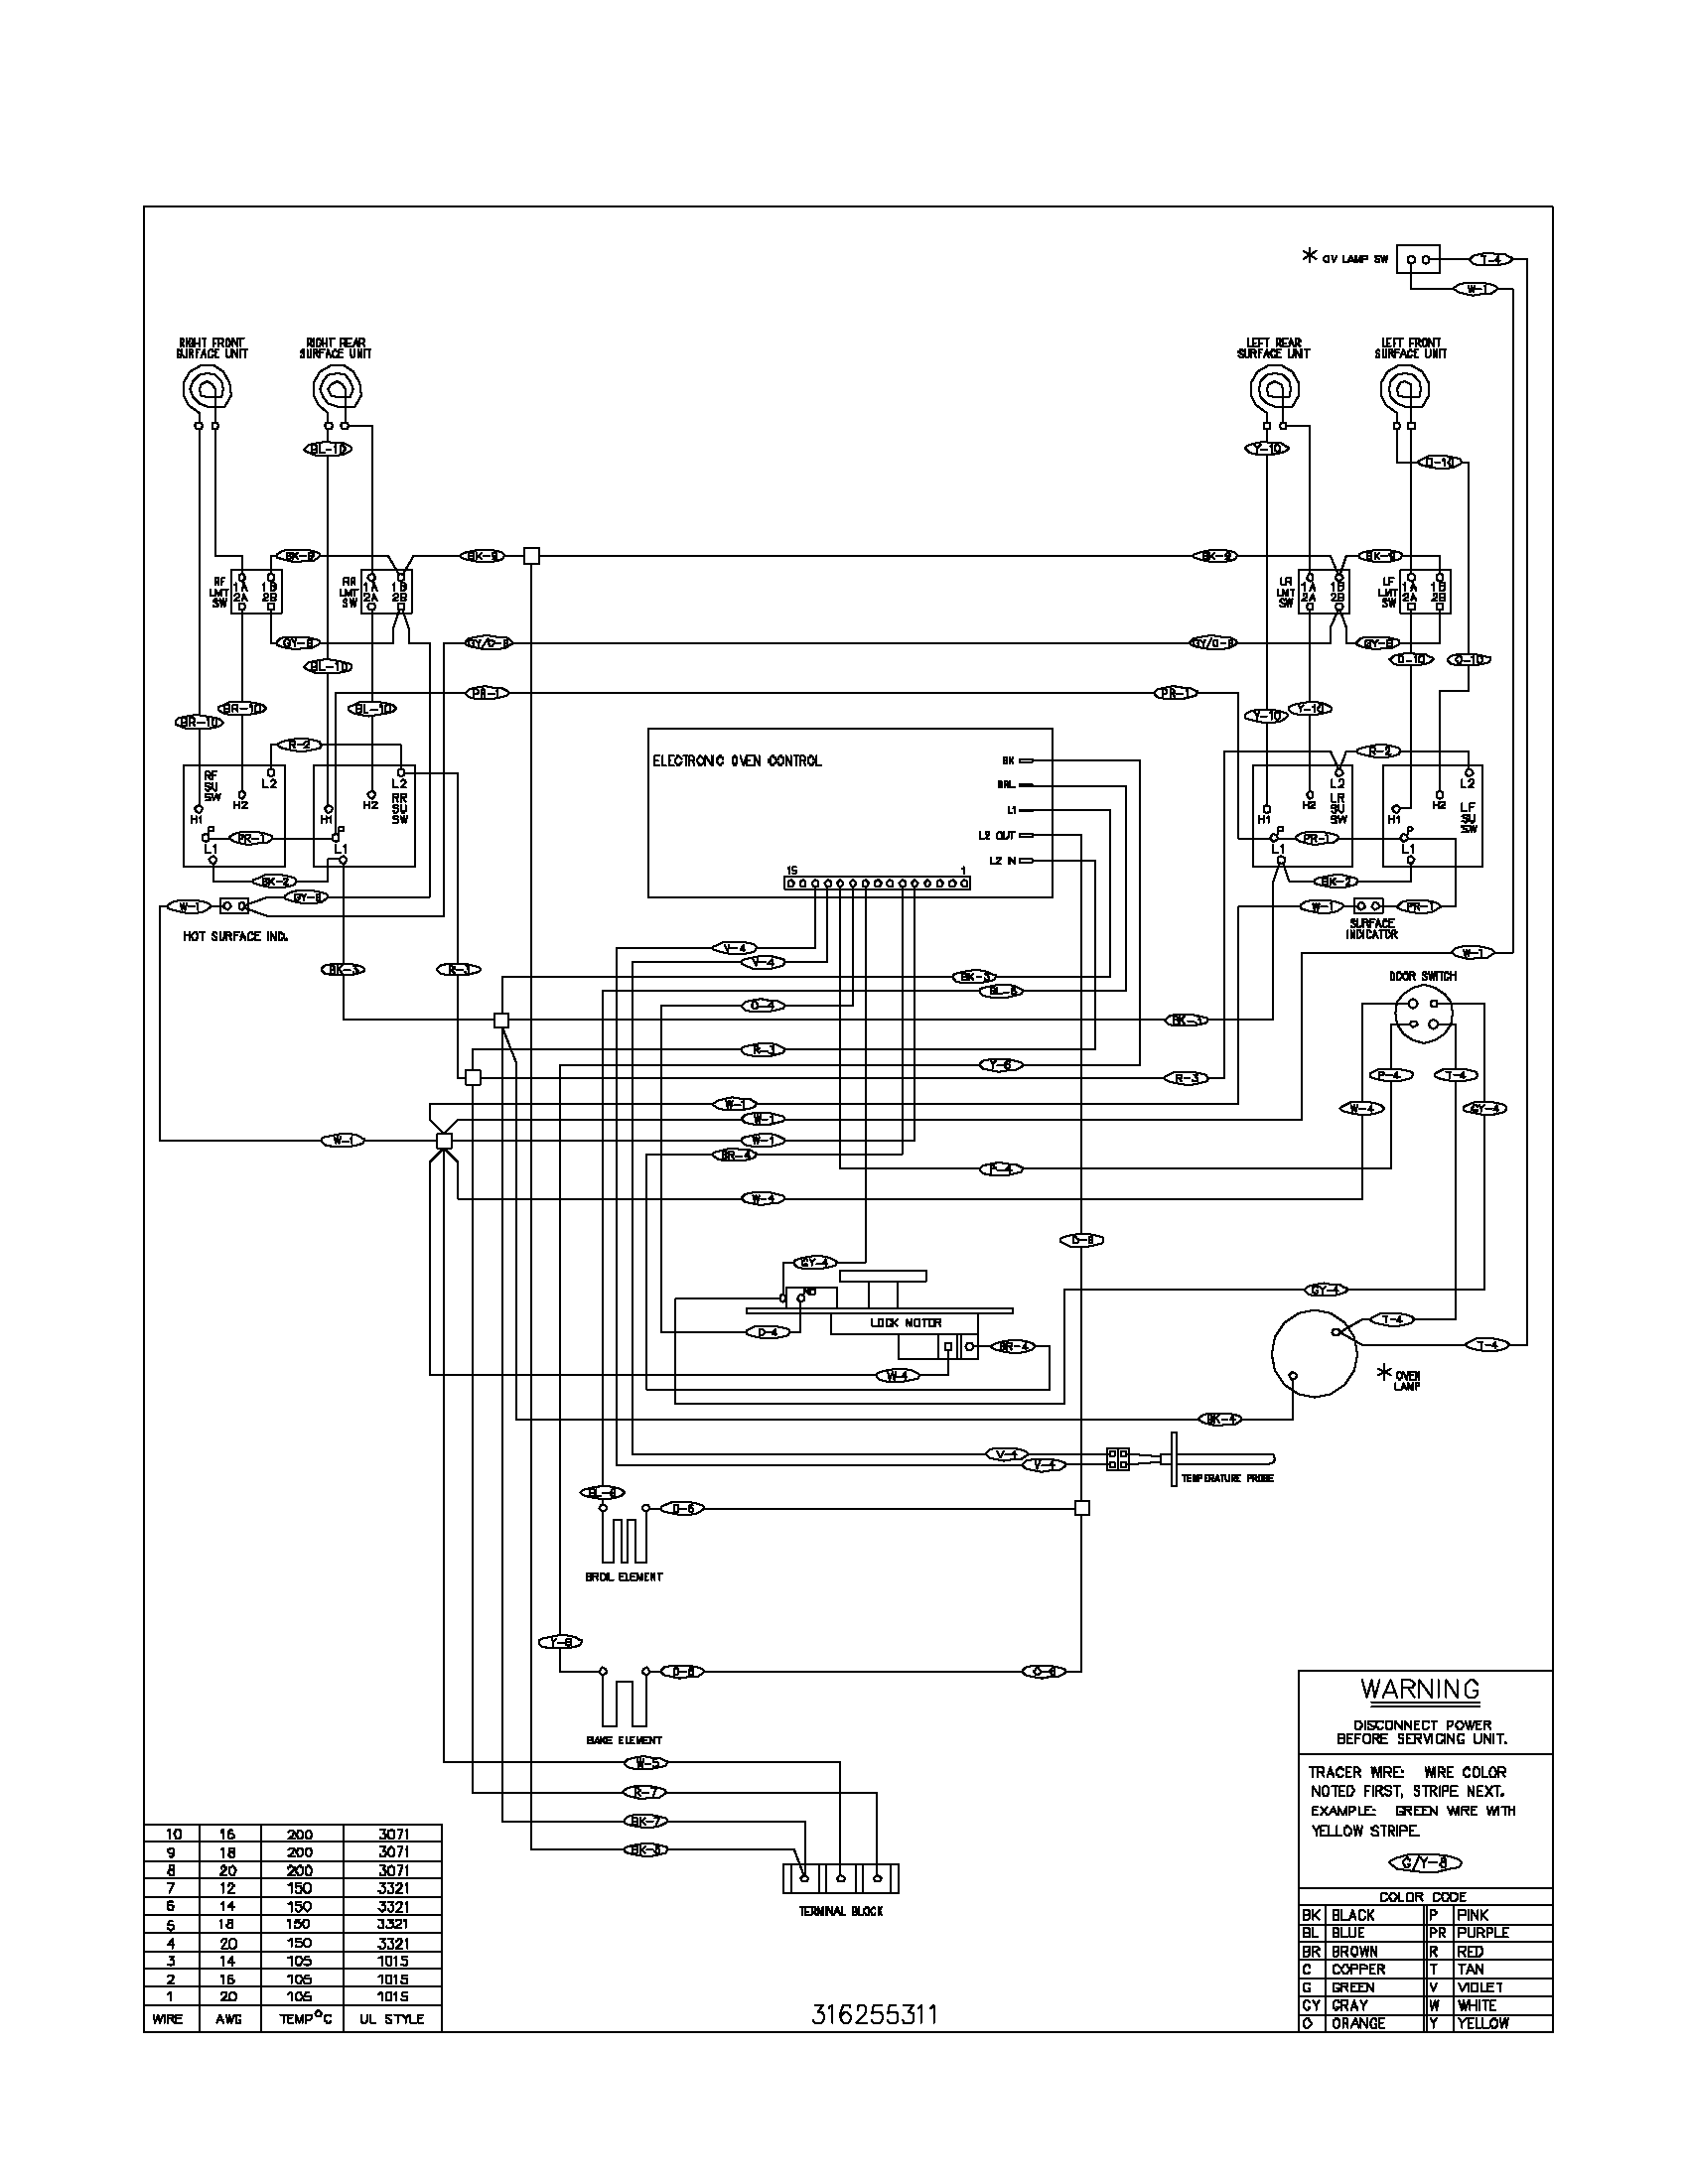 wiring diagram parts vdsl wiring diagram wiring gfci outlets in series \u2022 wiring LR 79596 at mifinder.co